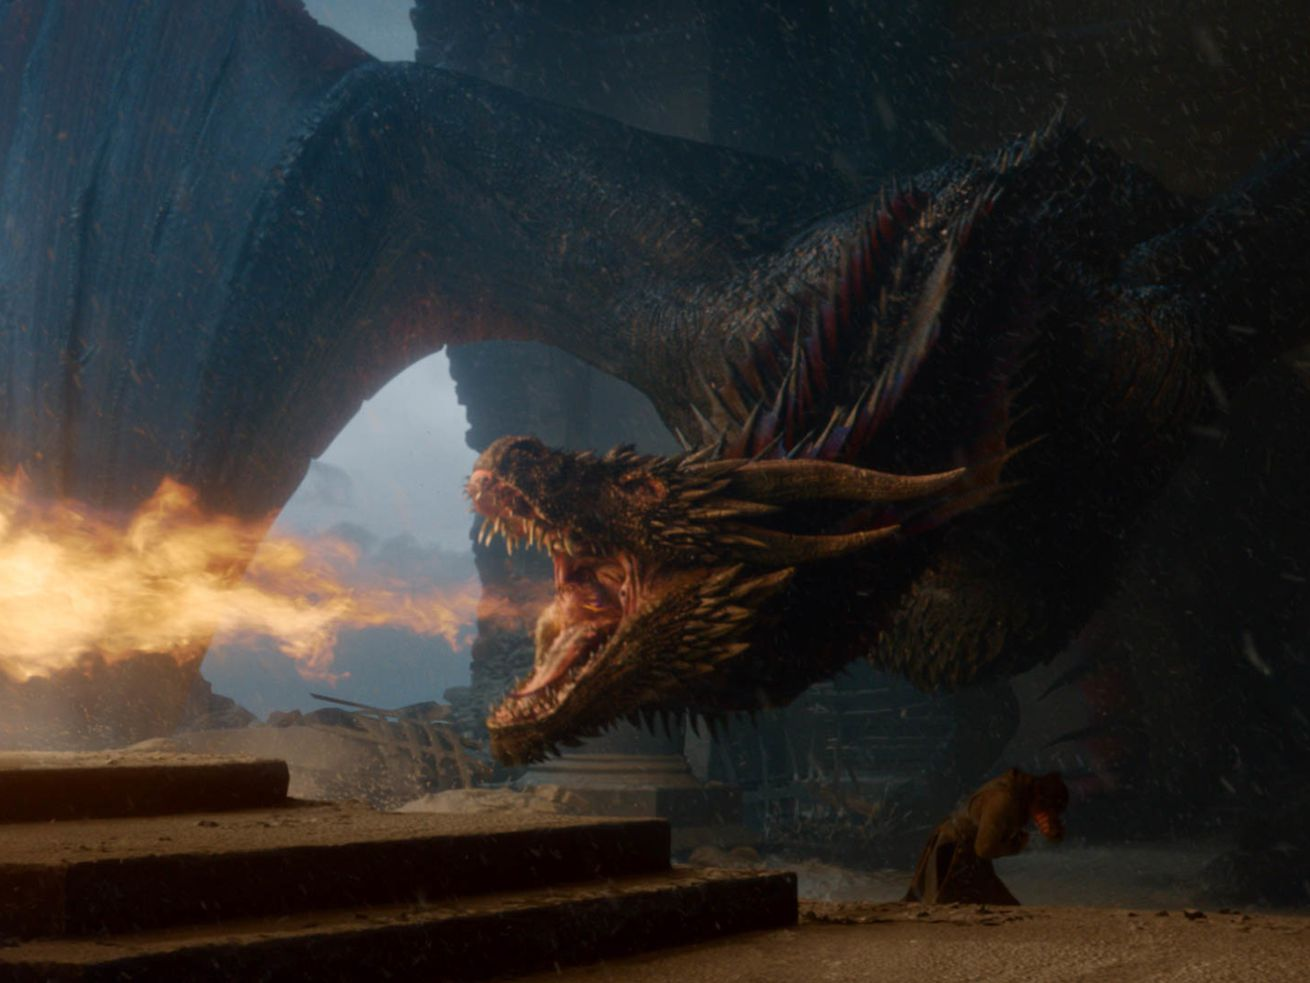 Drogon burns down the idea of planning out your series finale.